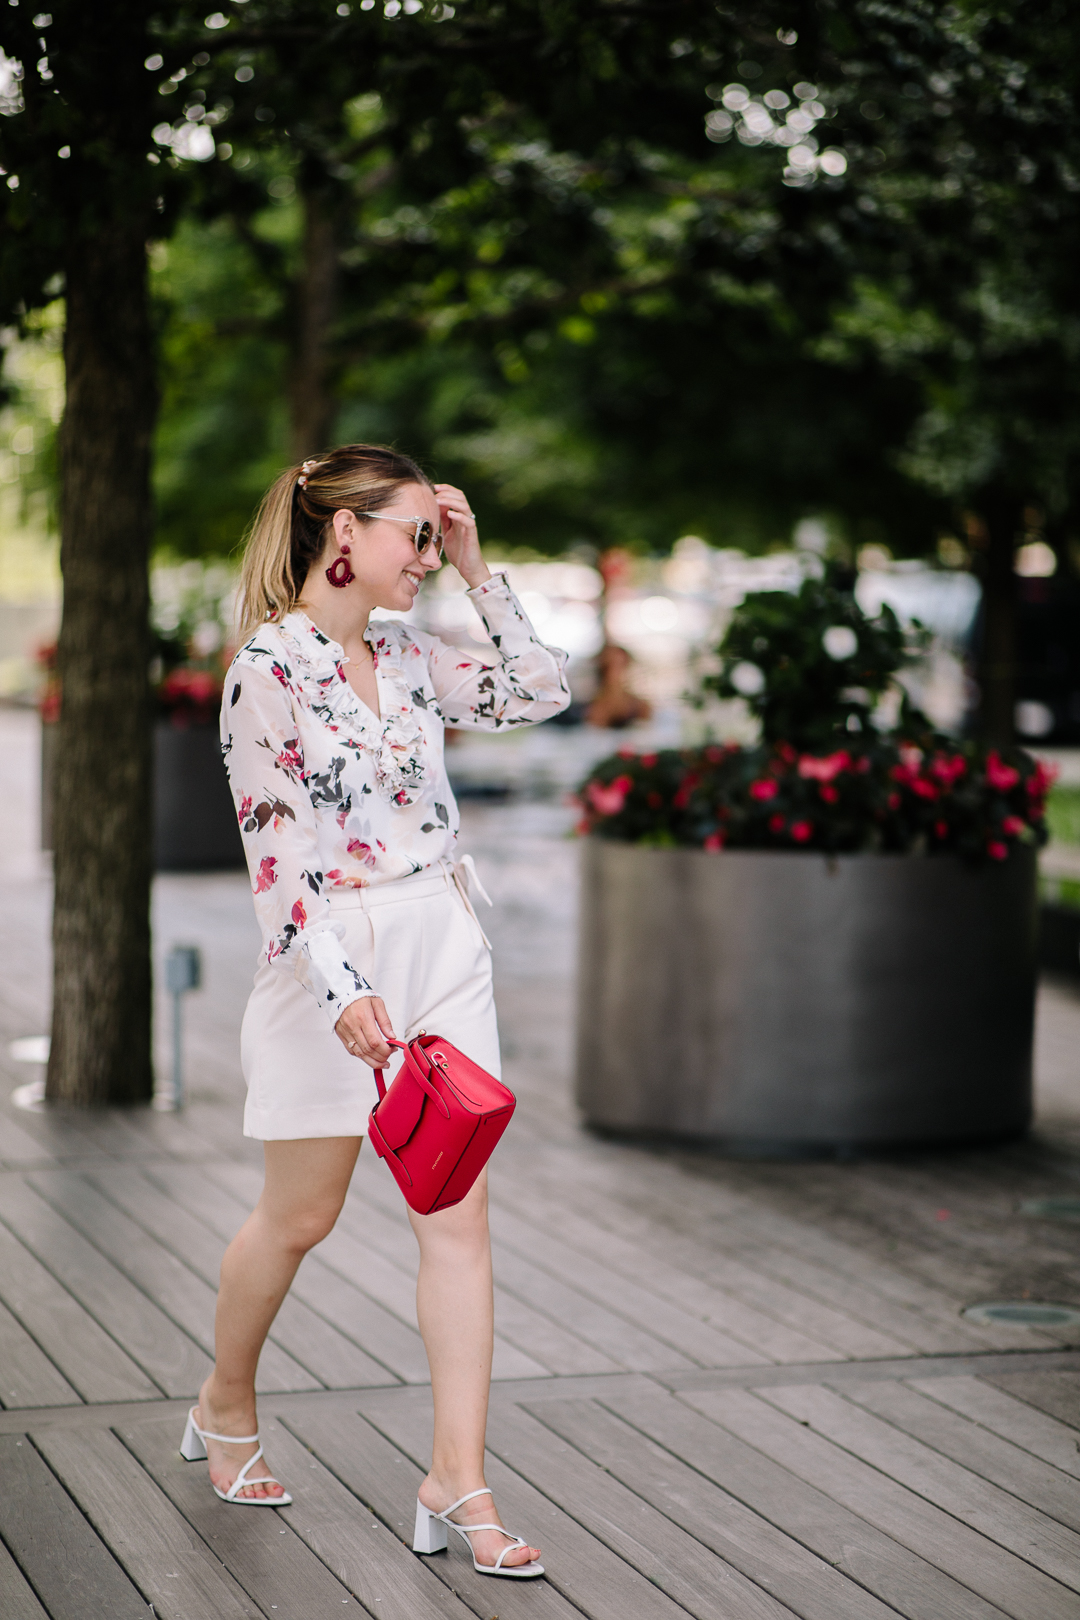 Belted shorts and ruffle blouse from WHBM - Kerrie M. Burke